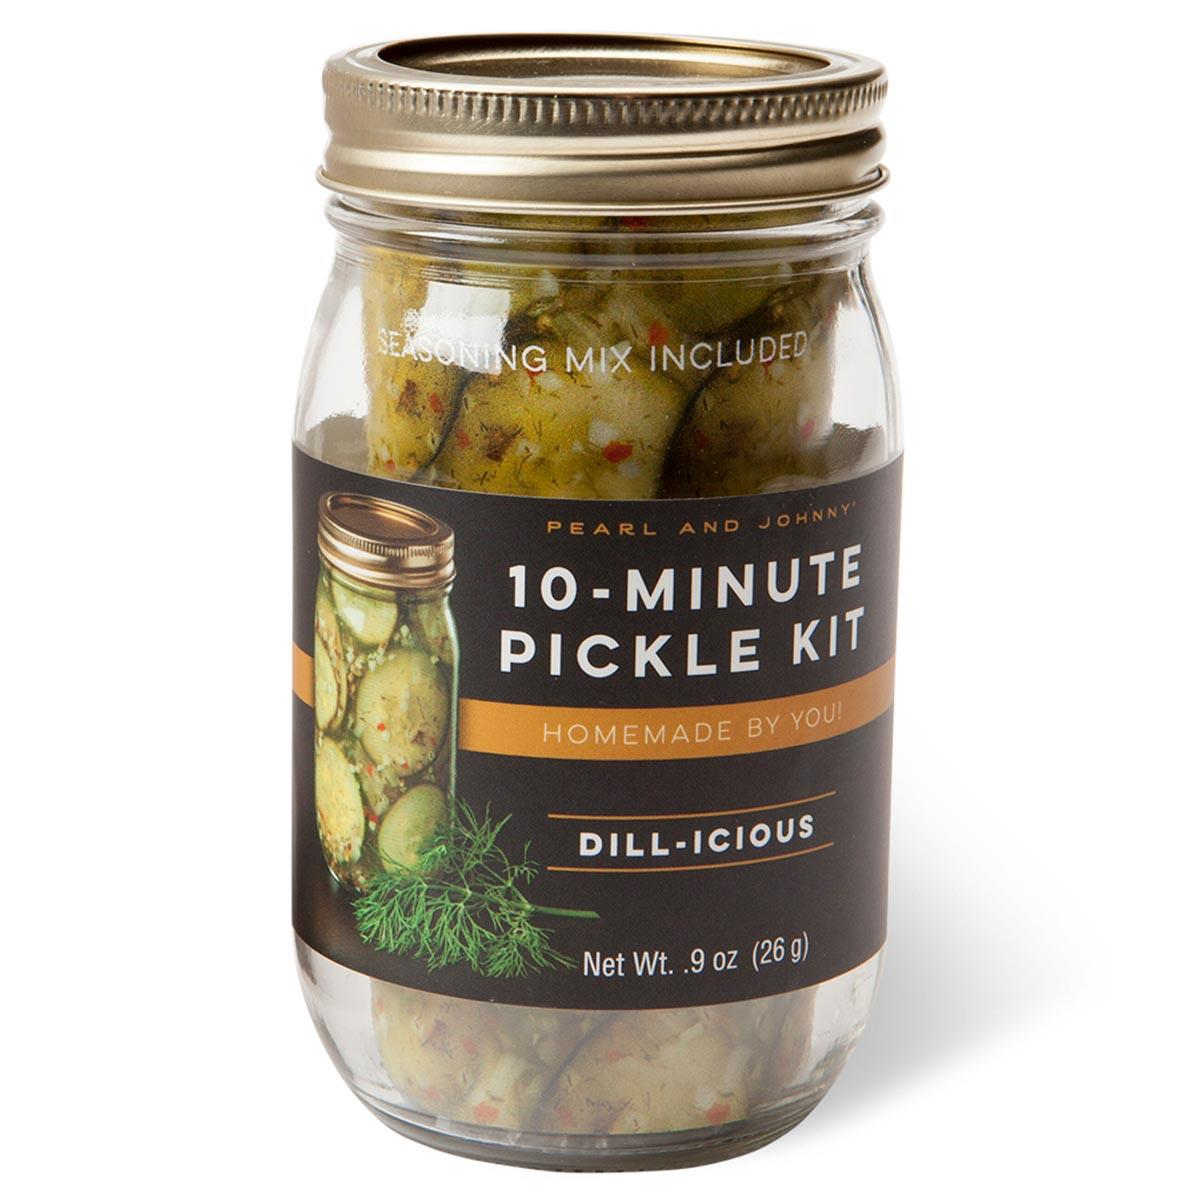 DILL-ICIOUS PICKLE JAR